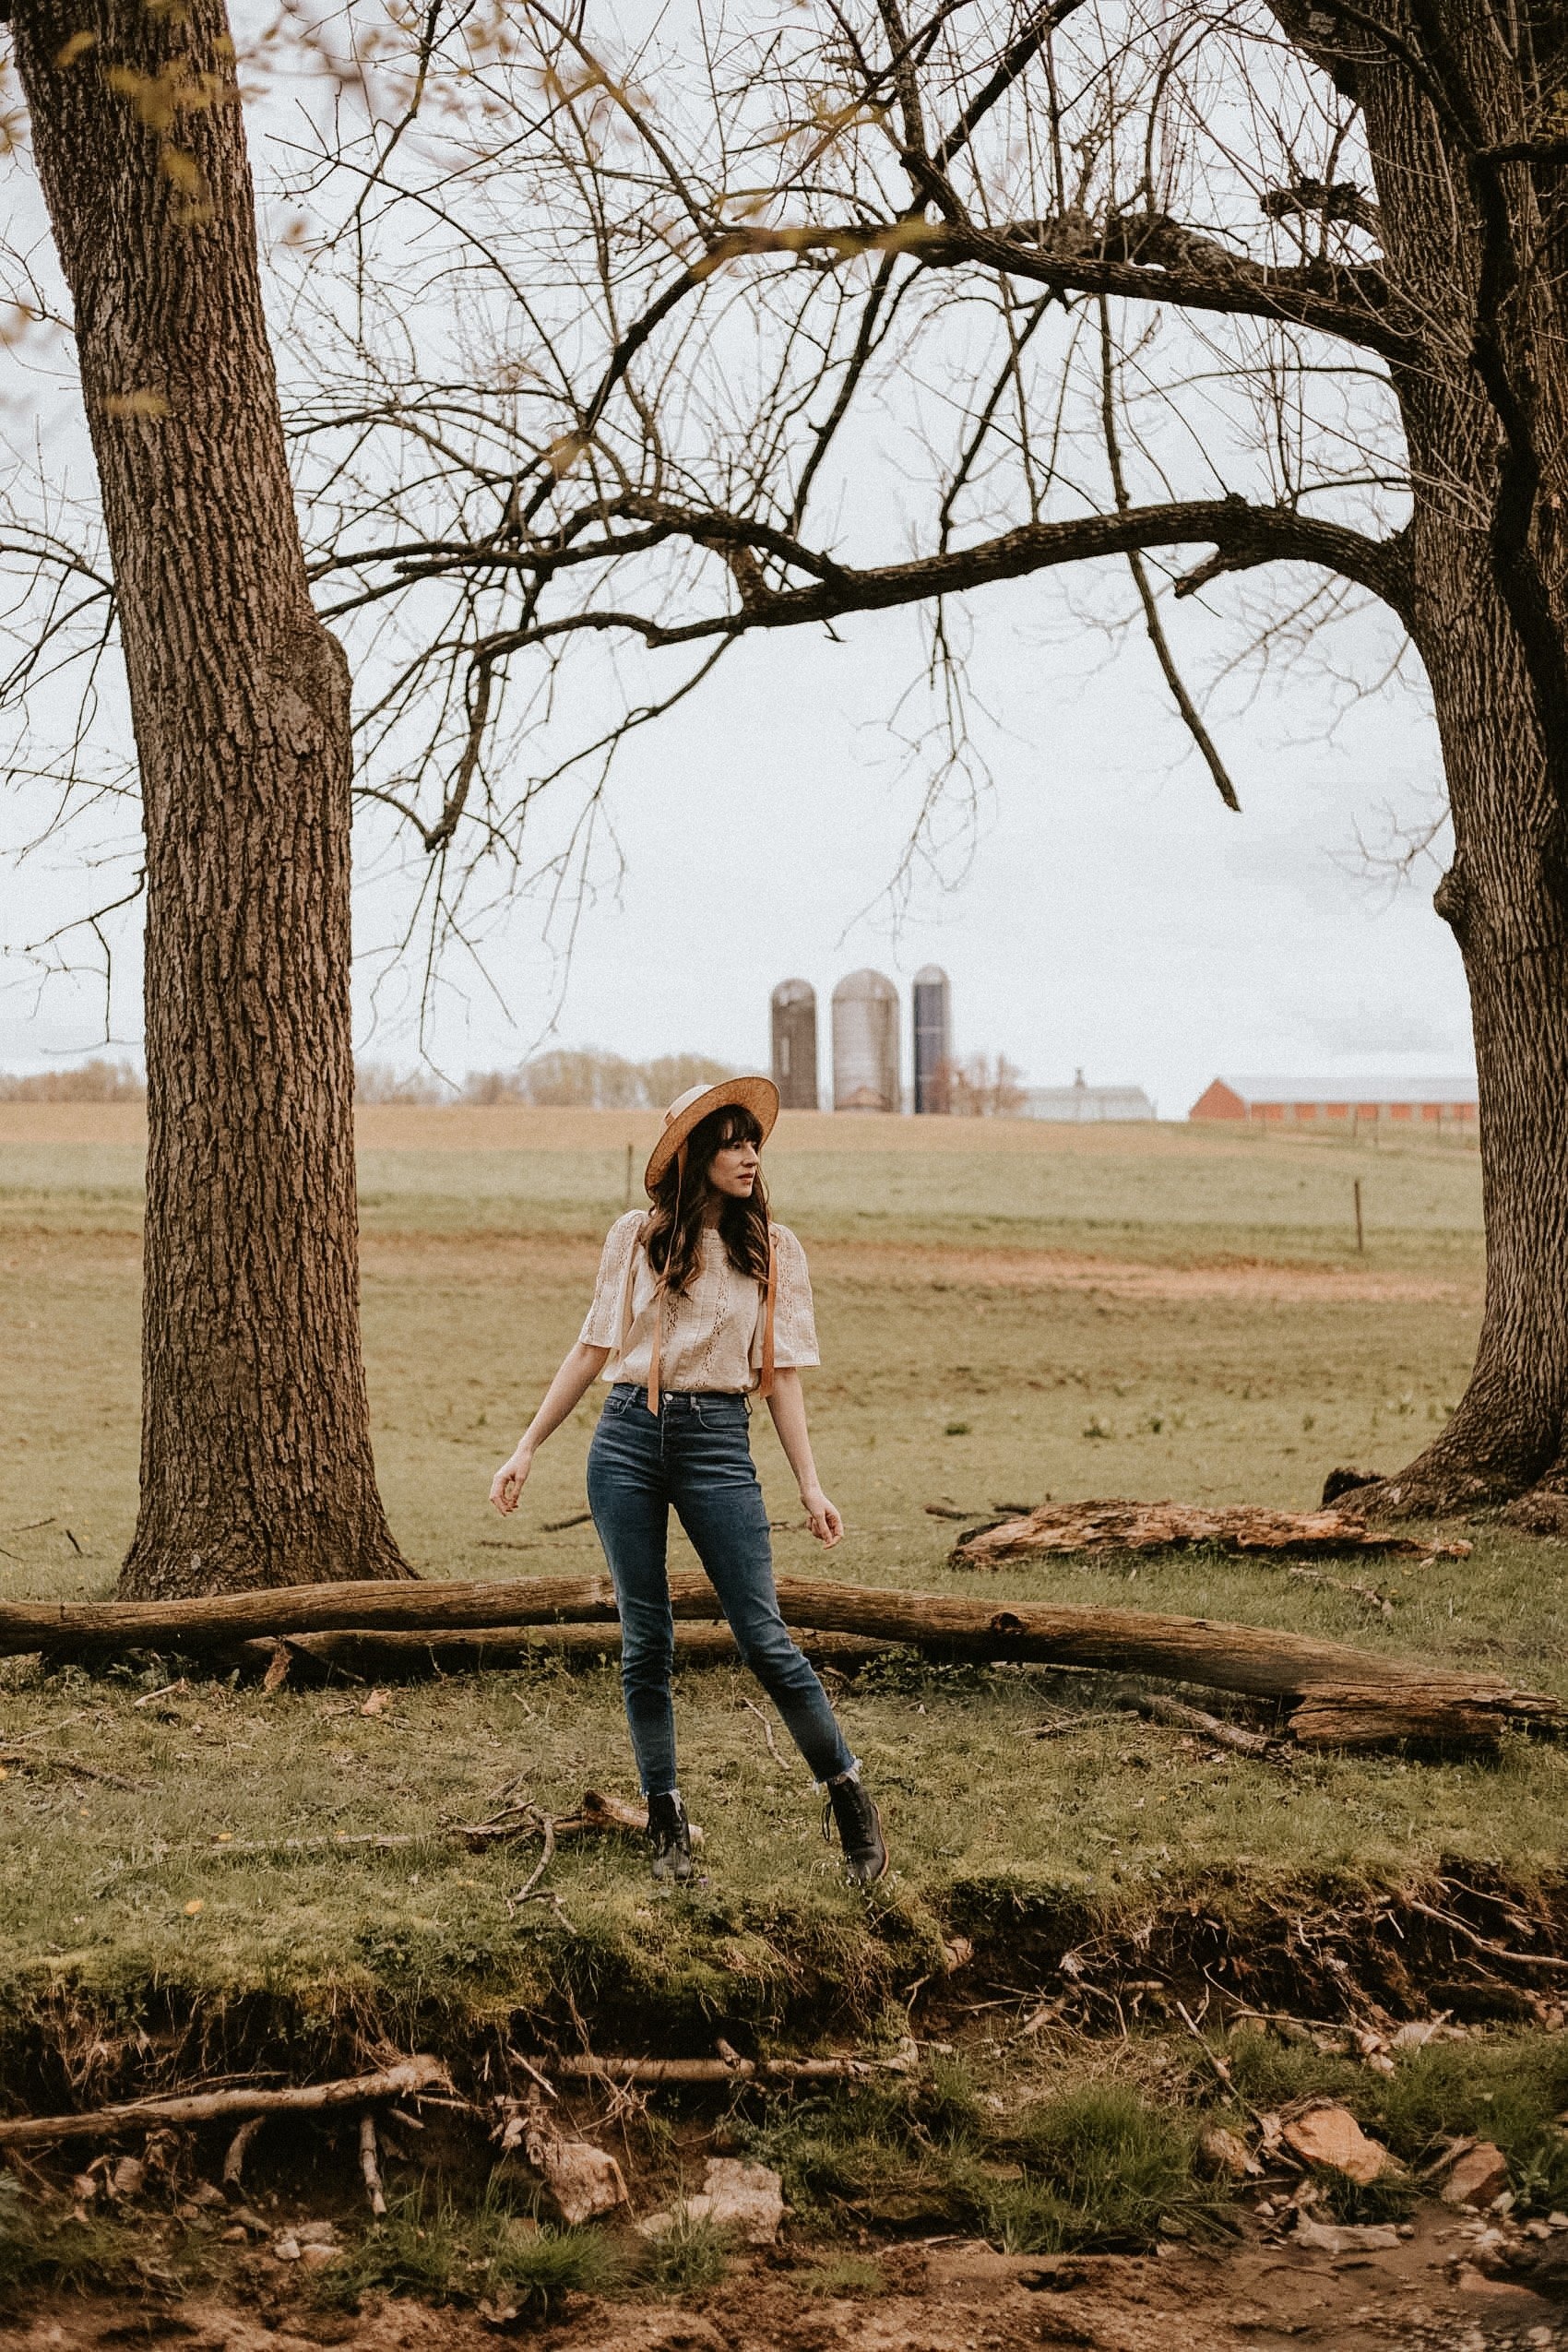 Sezane Blouse with Everlane Jeans and Nisolo Boots on women in field